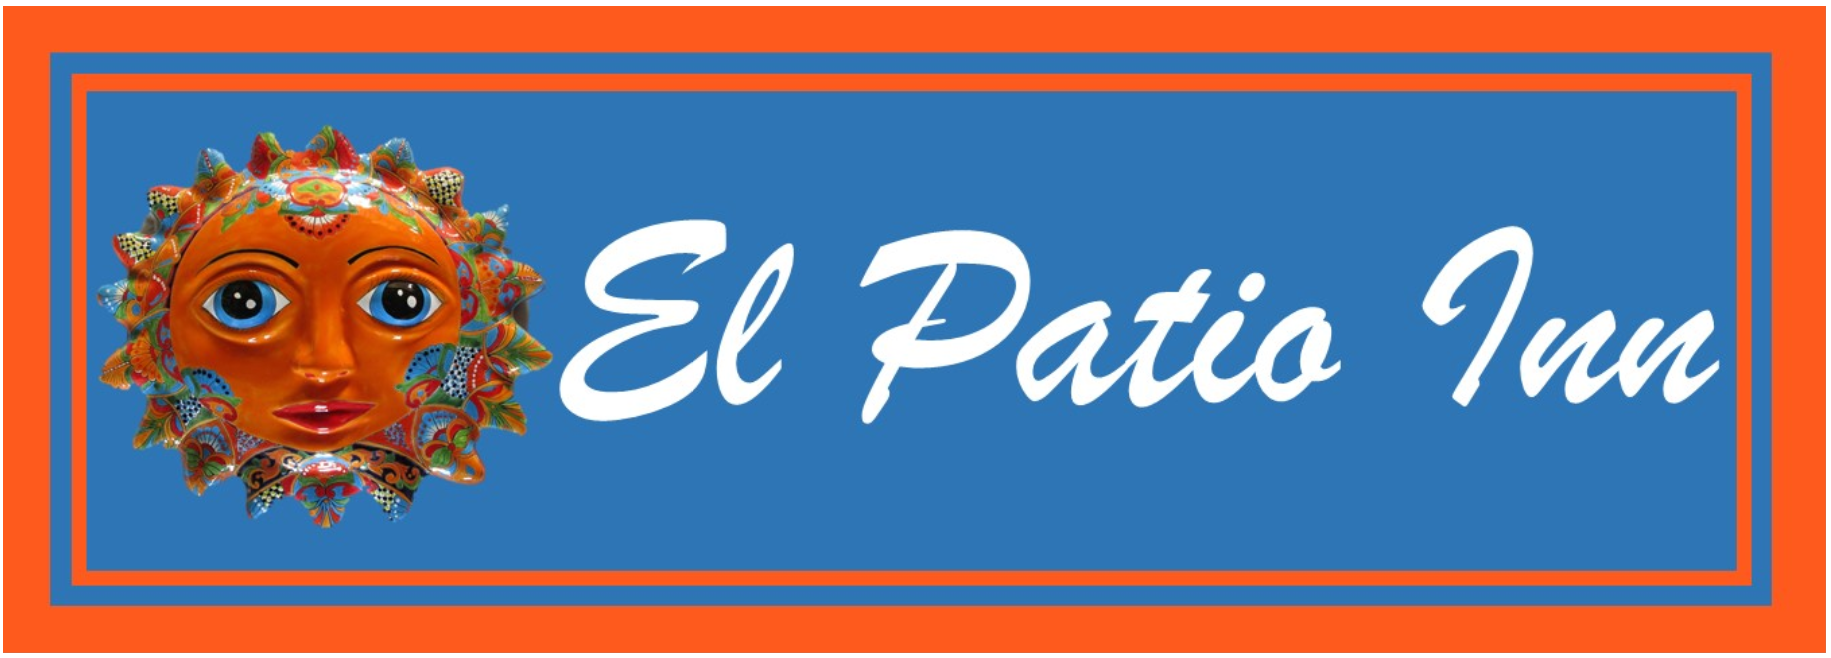 El Patio Inn